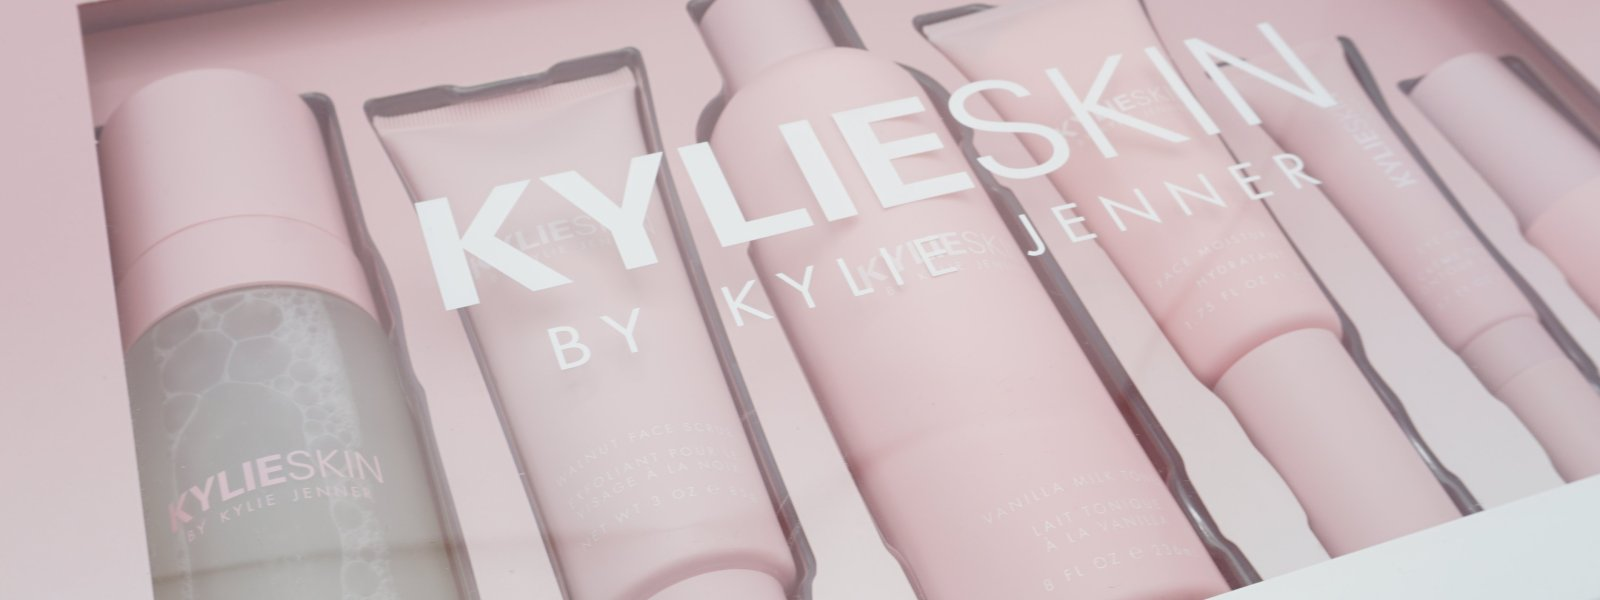 Kylie Skin Products, My Thoughts After 2 Weeks of Using Them | Skincare Review